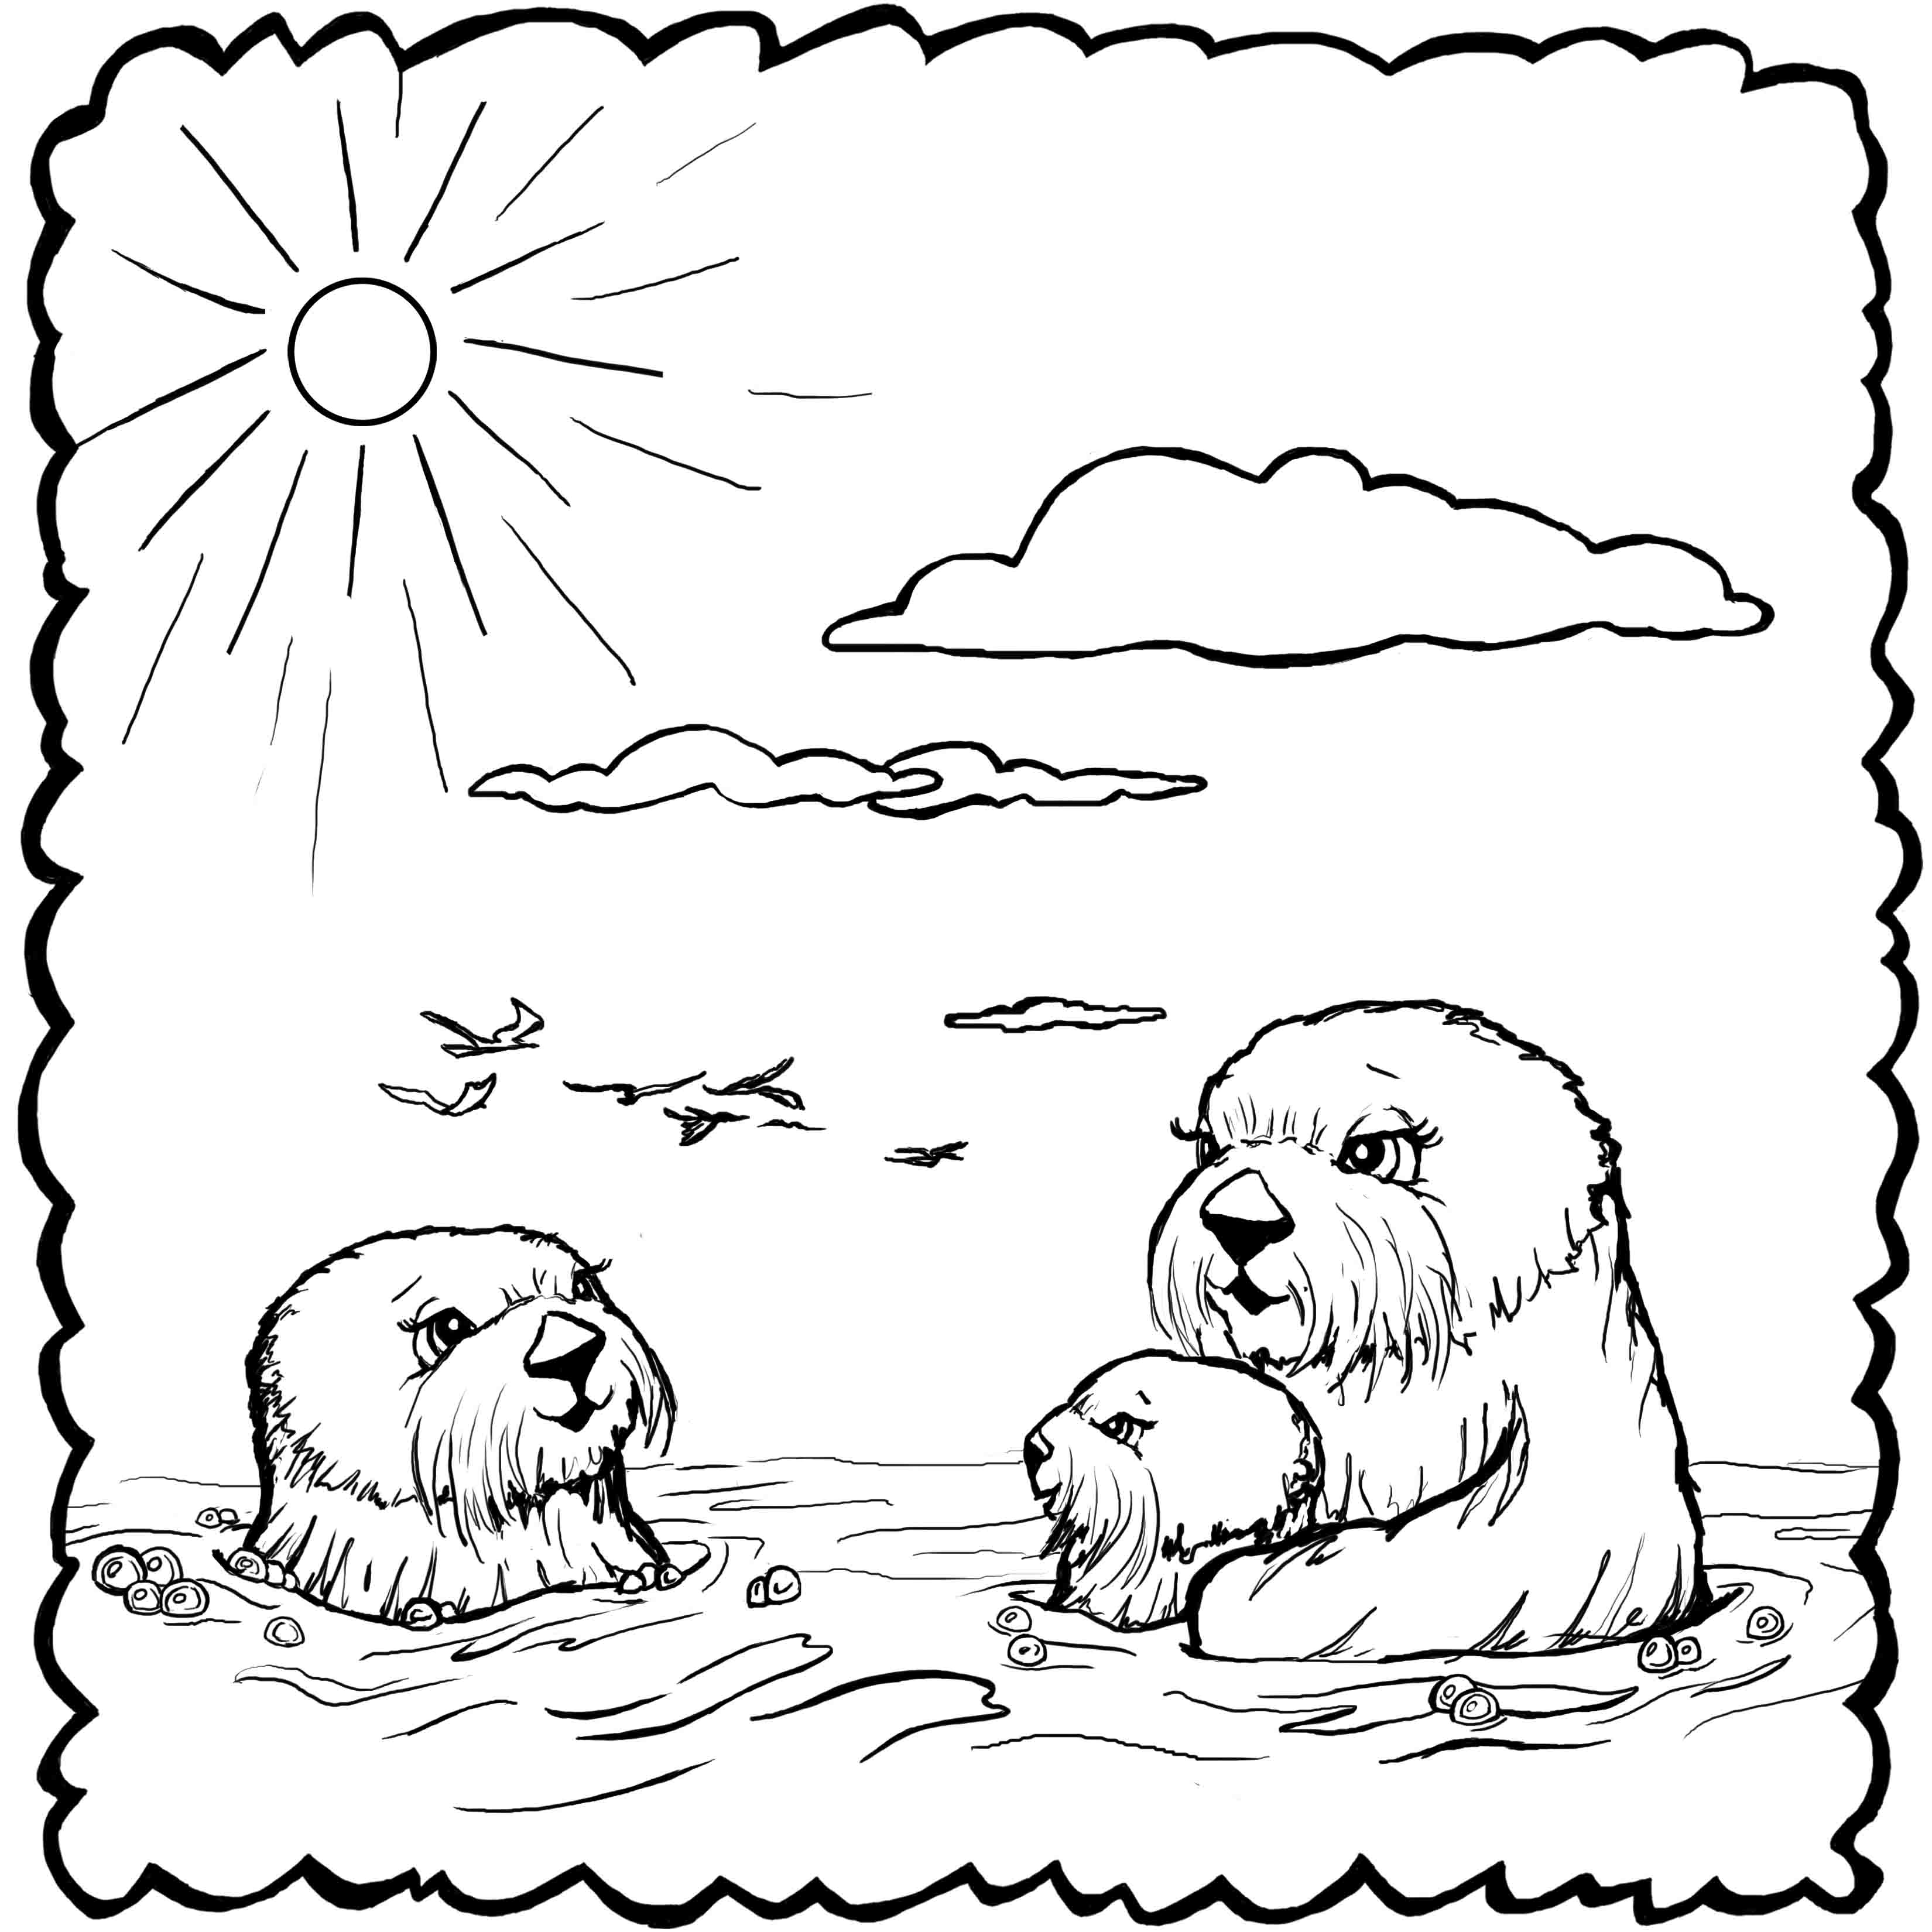 otter coloring page - coloring pages josh the otter